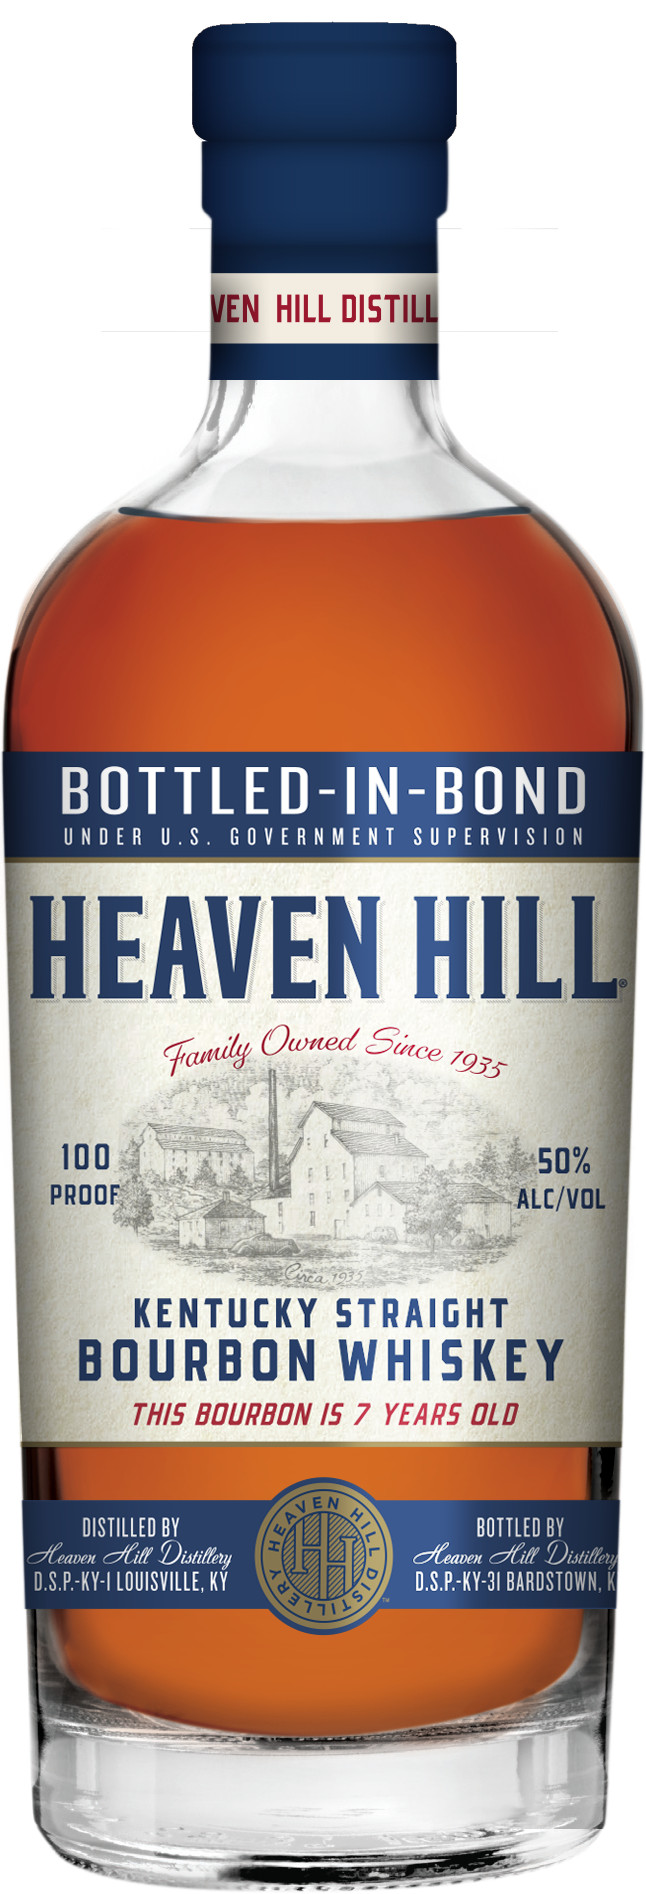 HH BIB Bottle - Heaven Hill Distillery Launches Historic, Bottled-in-Bond Namesake Bourbon